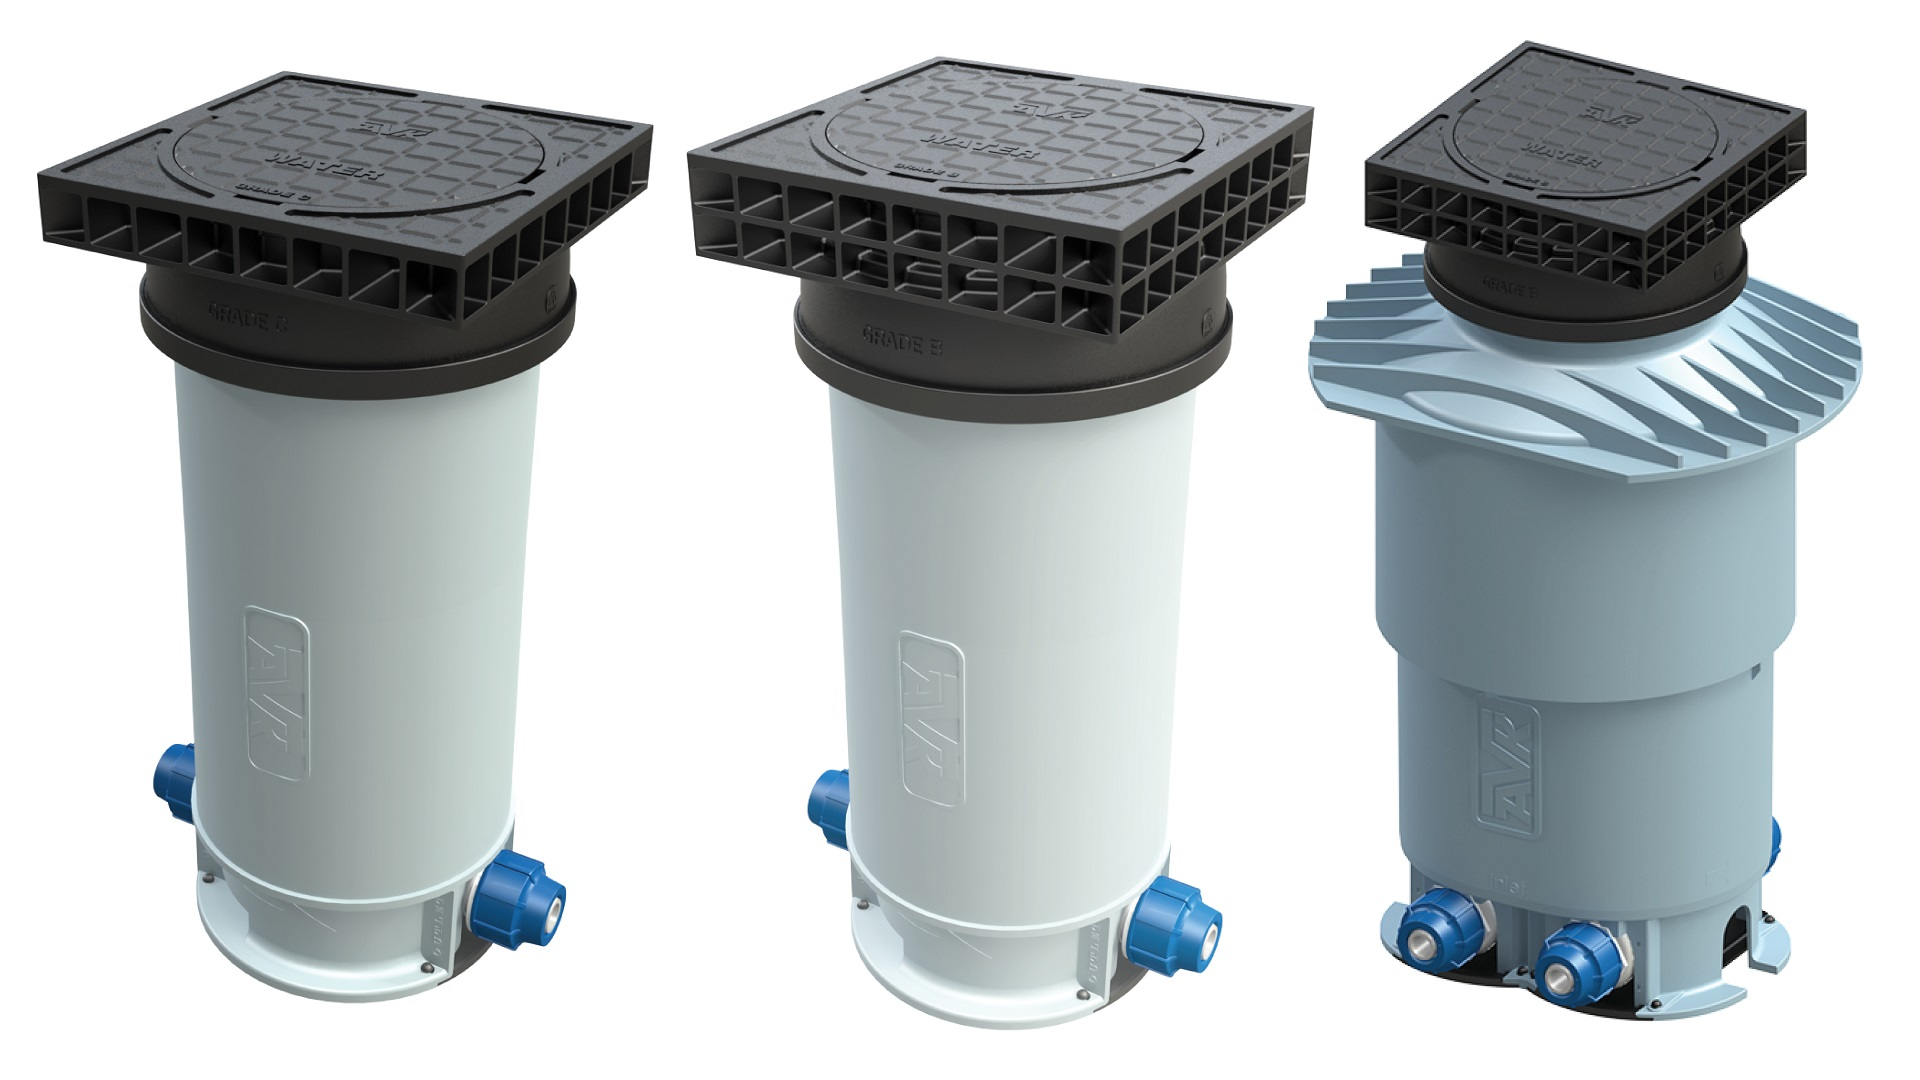 AVK Pentobox water meter boundary boxes